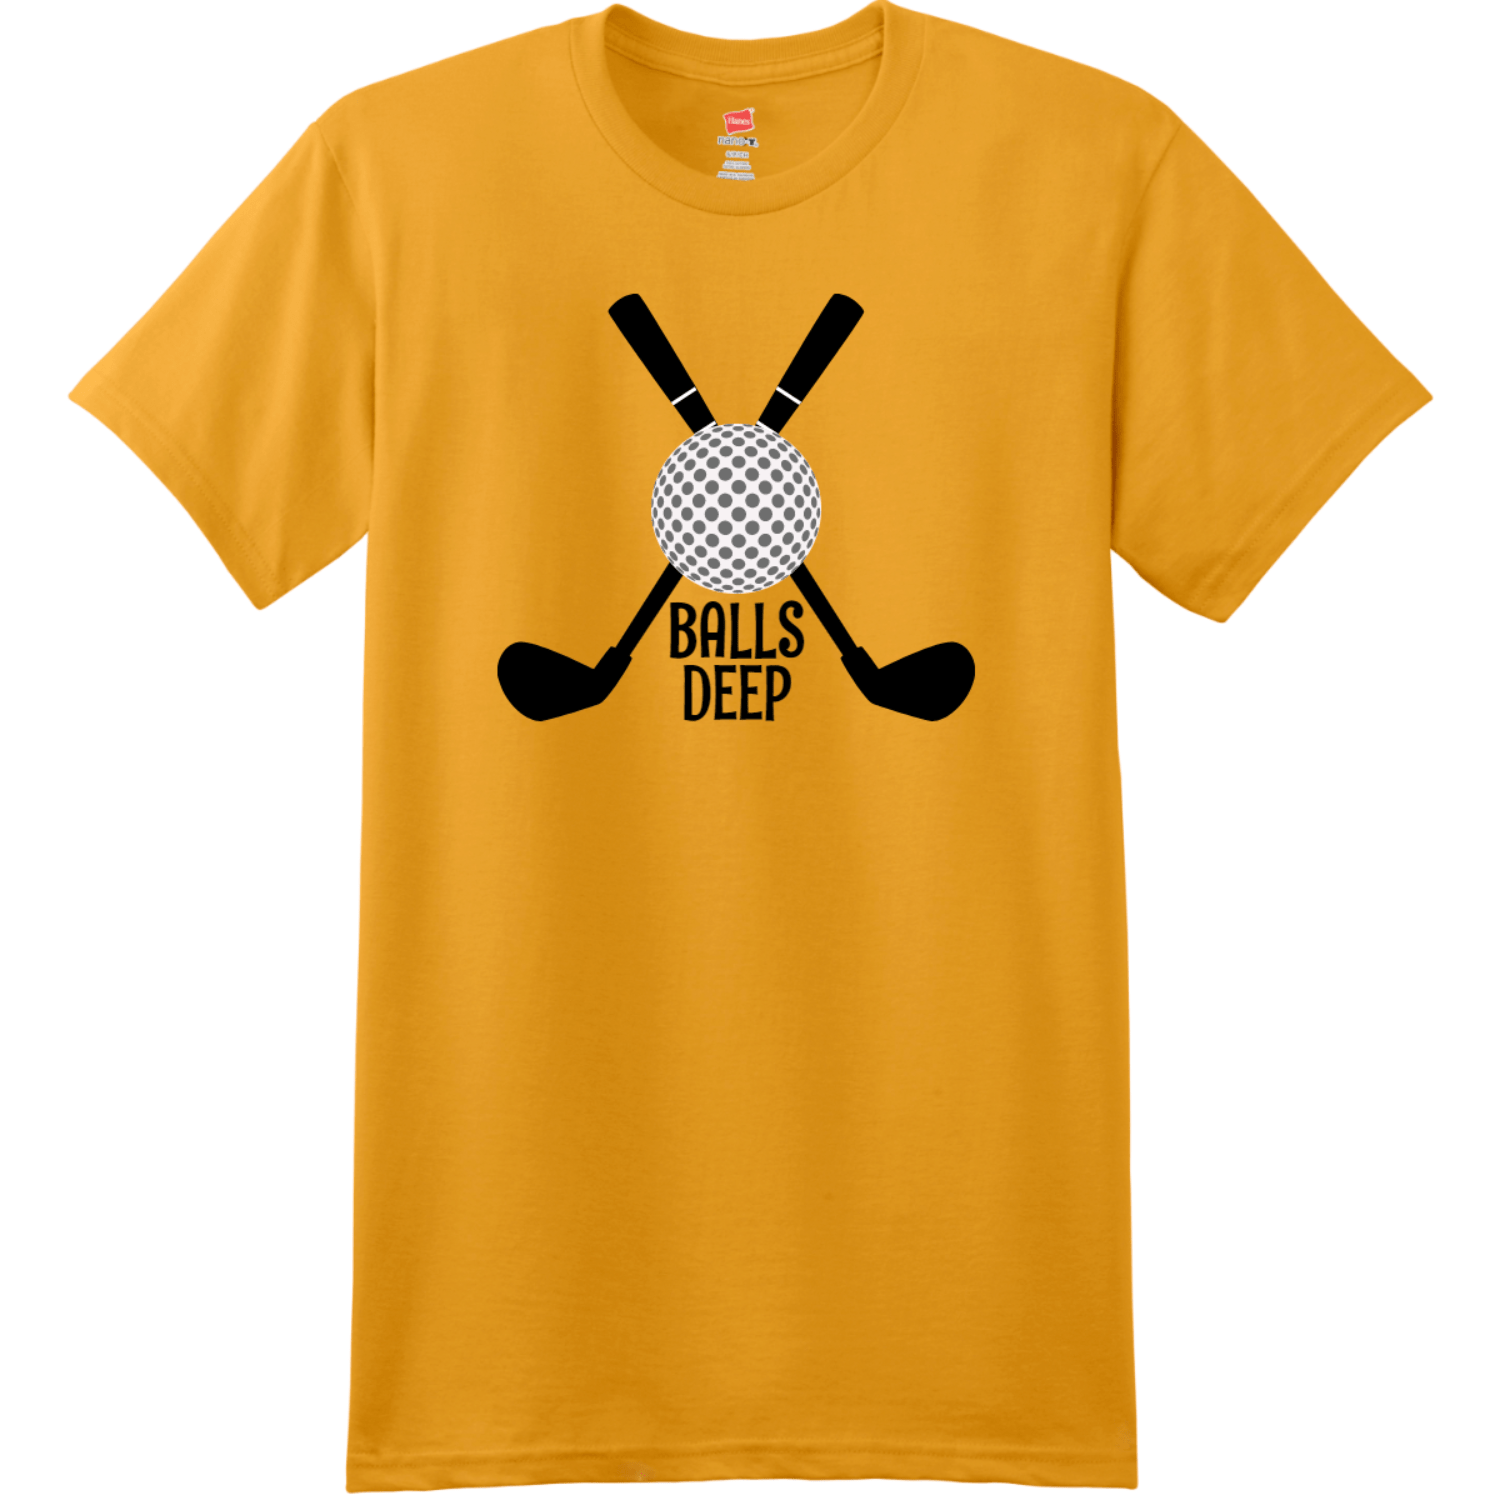 Balls Deep Funny Golf T Shirt Gold Hanes Nano 4980 Ringspun Cotton T Shirt